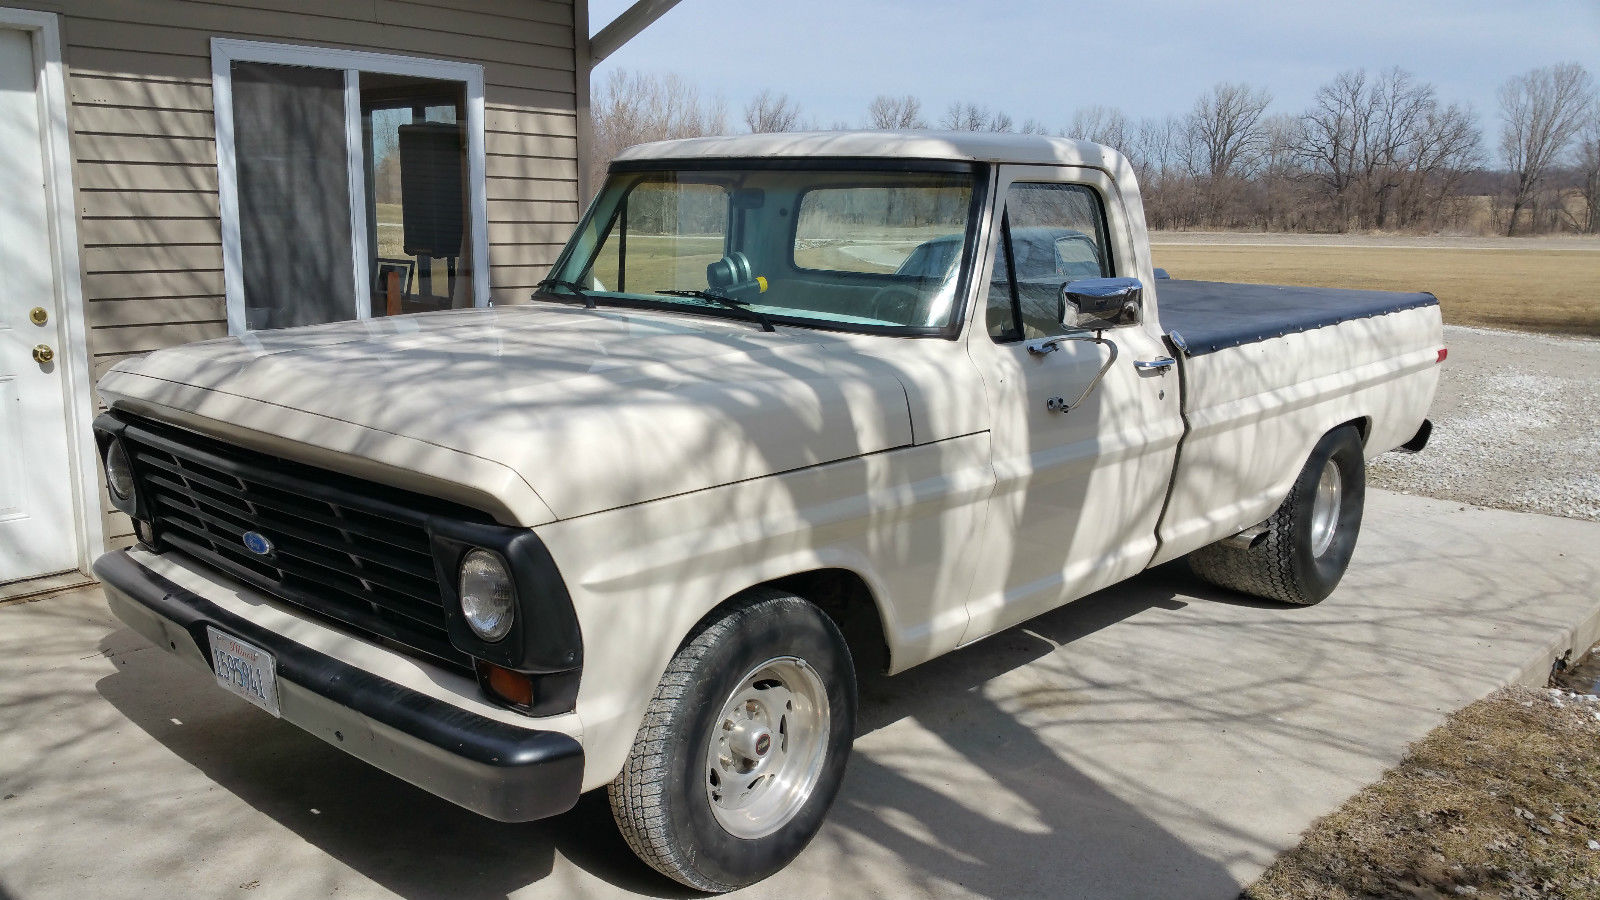 This 1967 ford f100 has the pro street stance but it needs the pro street suds